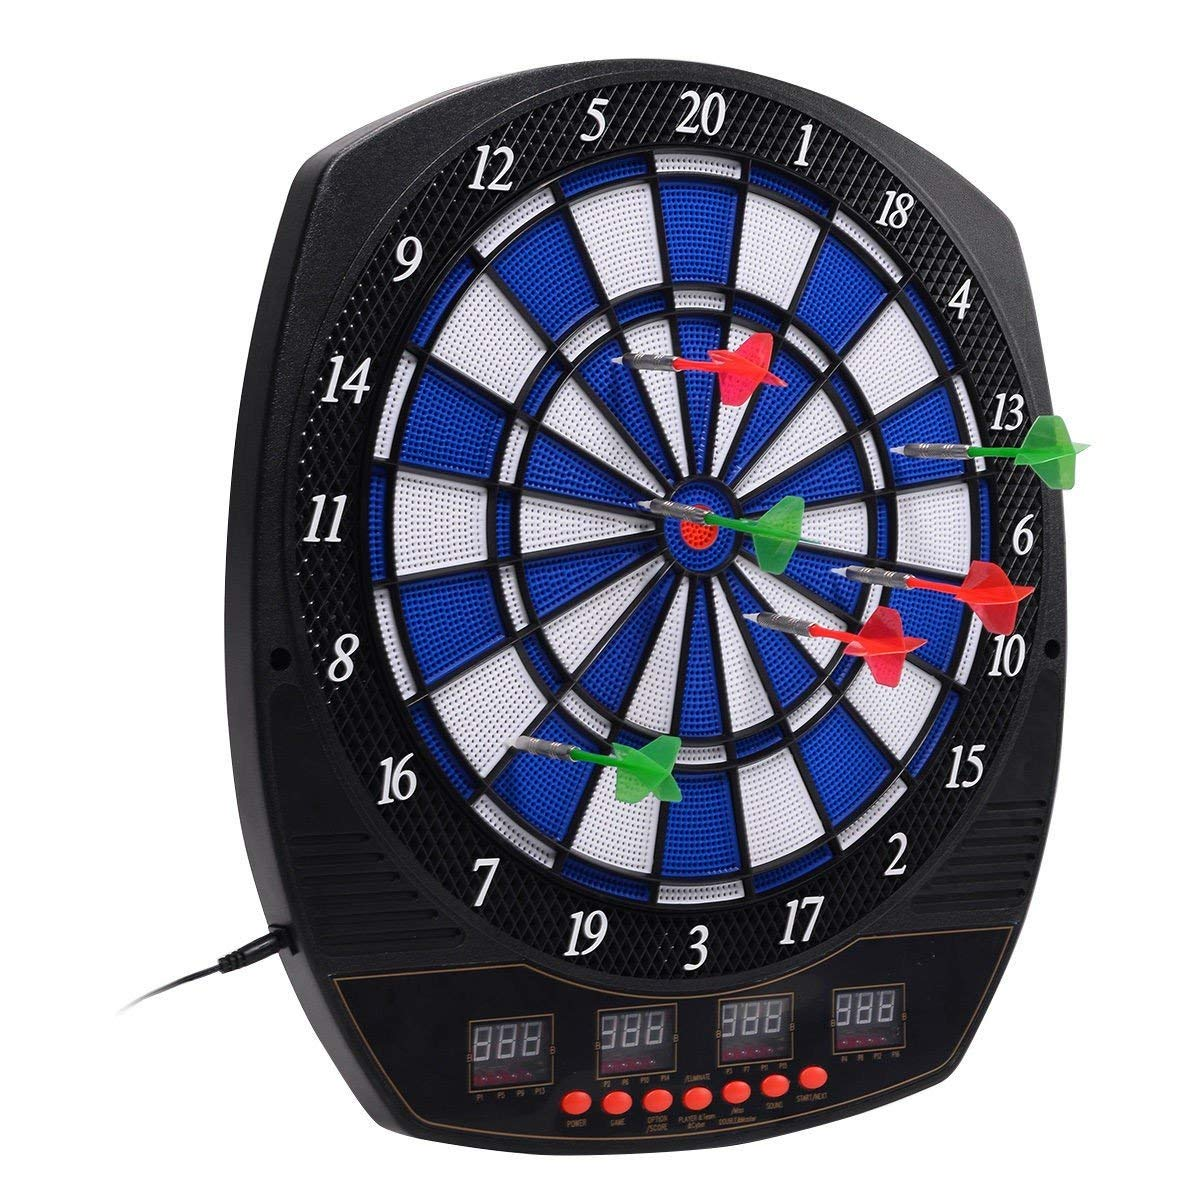 CWY LCD Display Arachnid Electronic Dart Board Set w/6 Darts